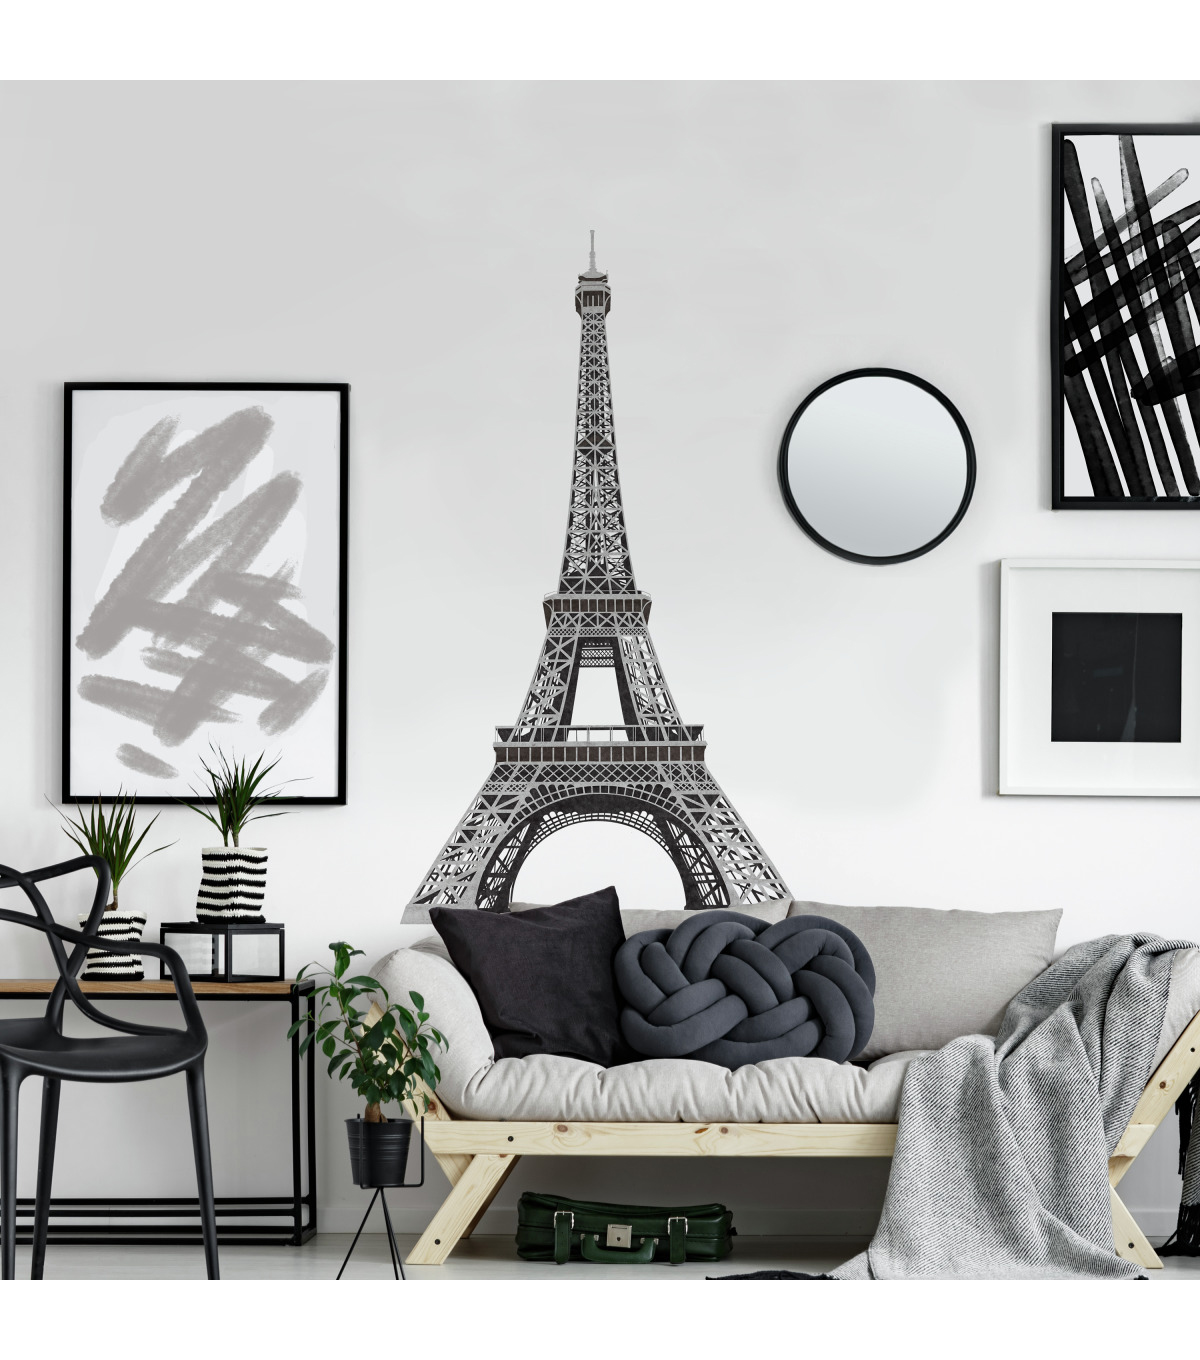 York Wallcoverings Wall Decals-Eiffel Tower Giant